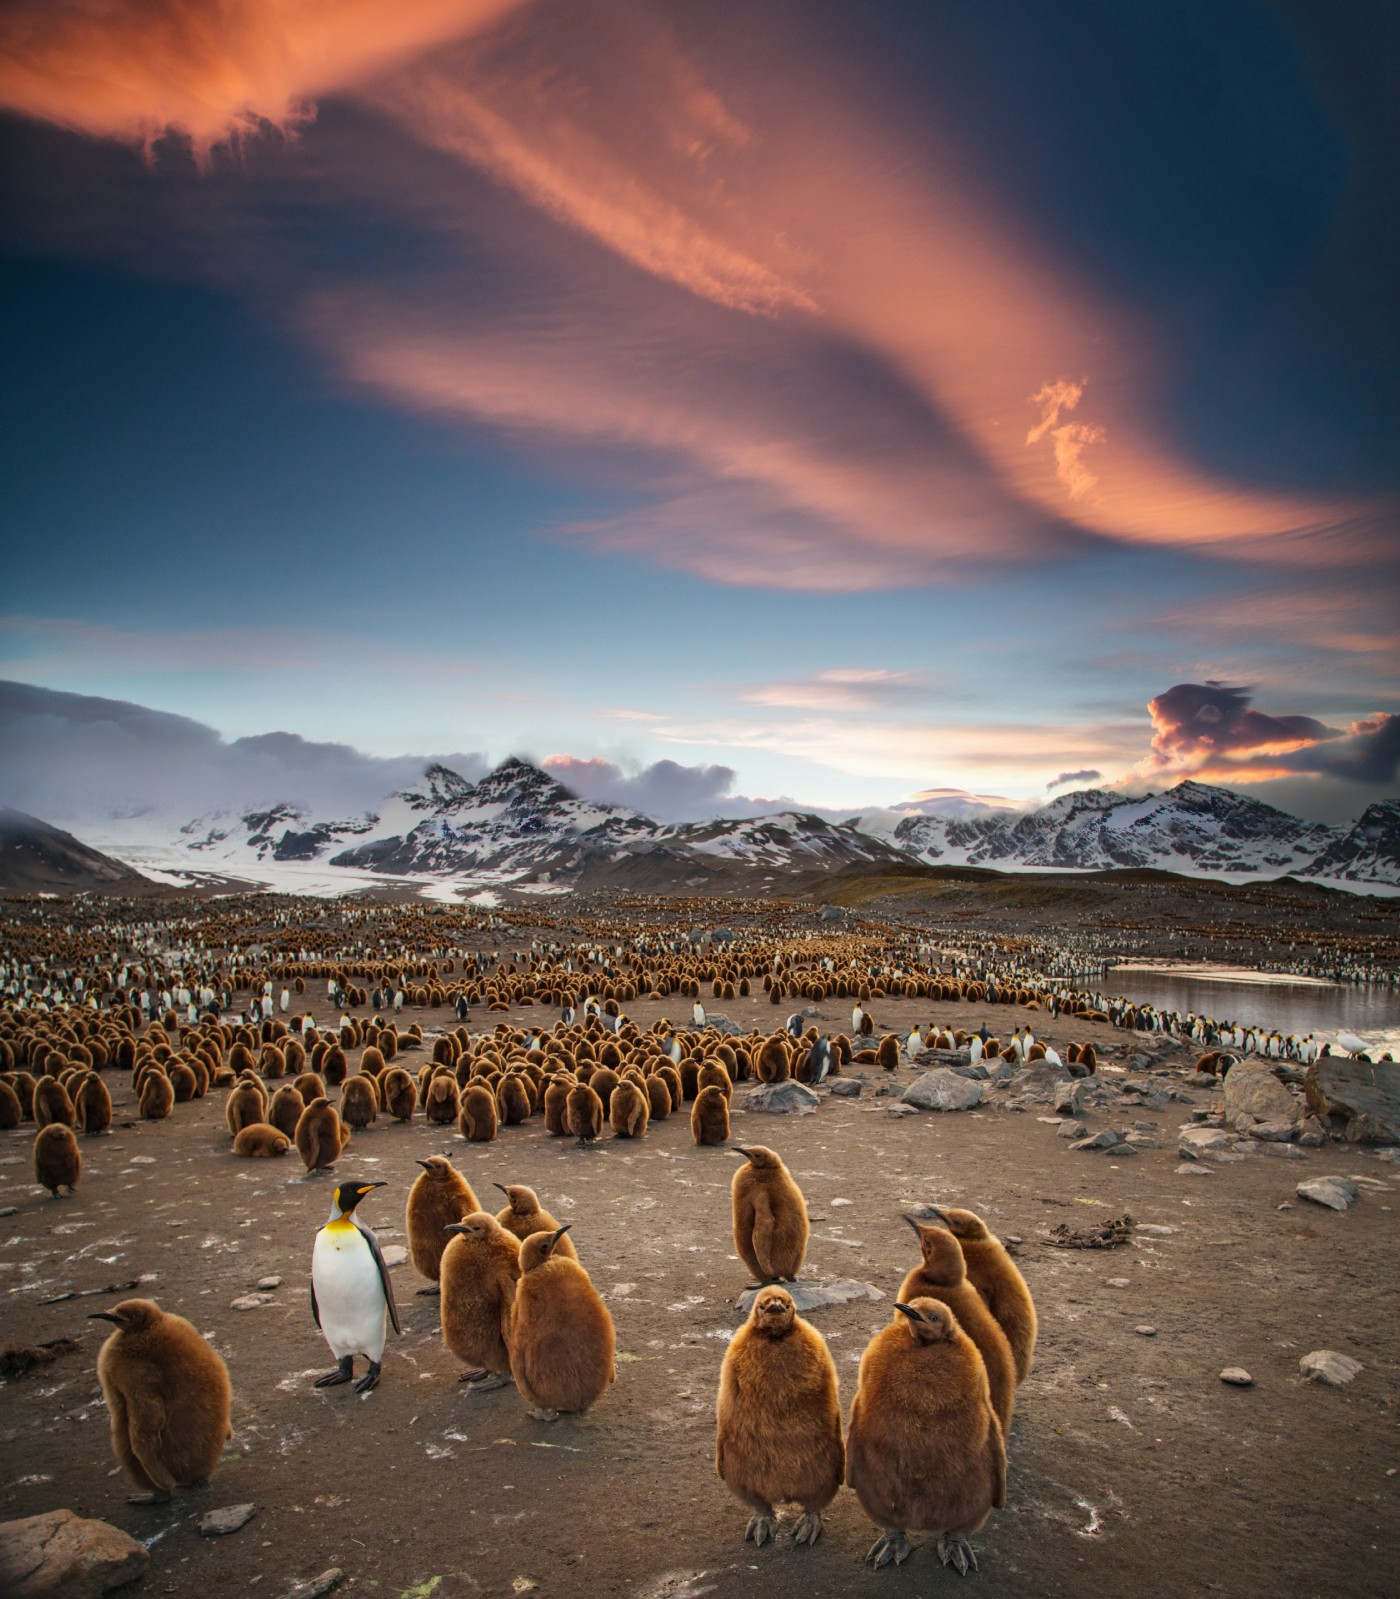 Groups of penguins together in South Georgia against mountainous backdrops and pink clouded sky